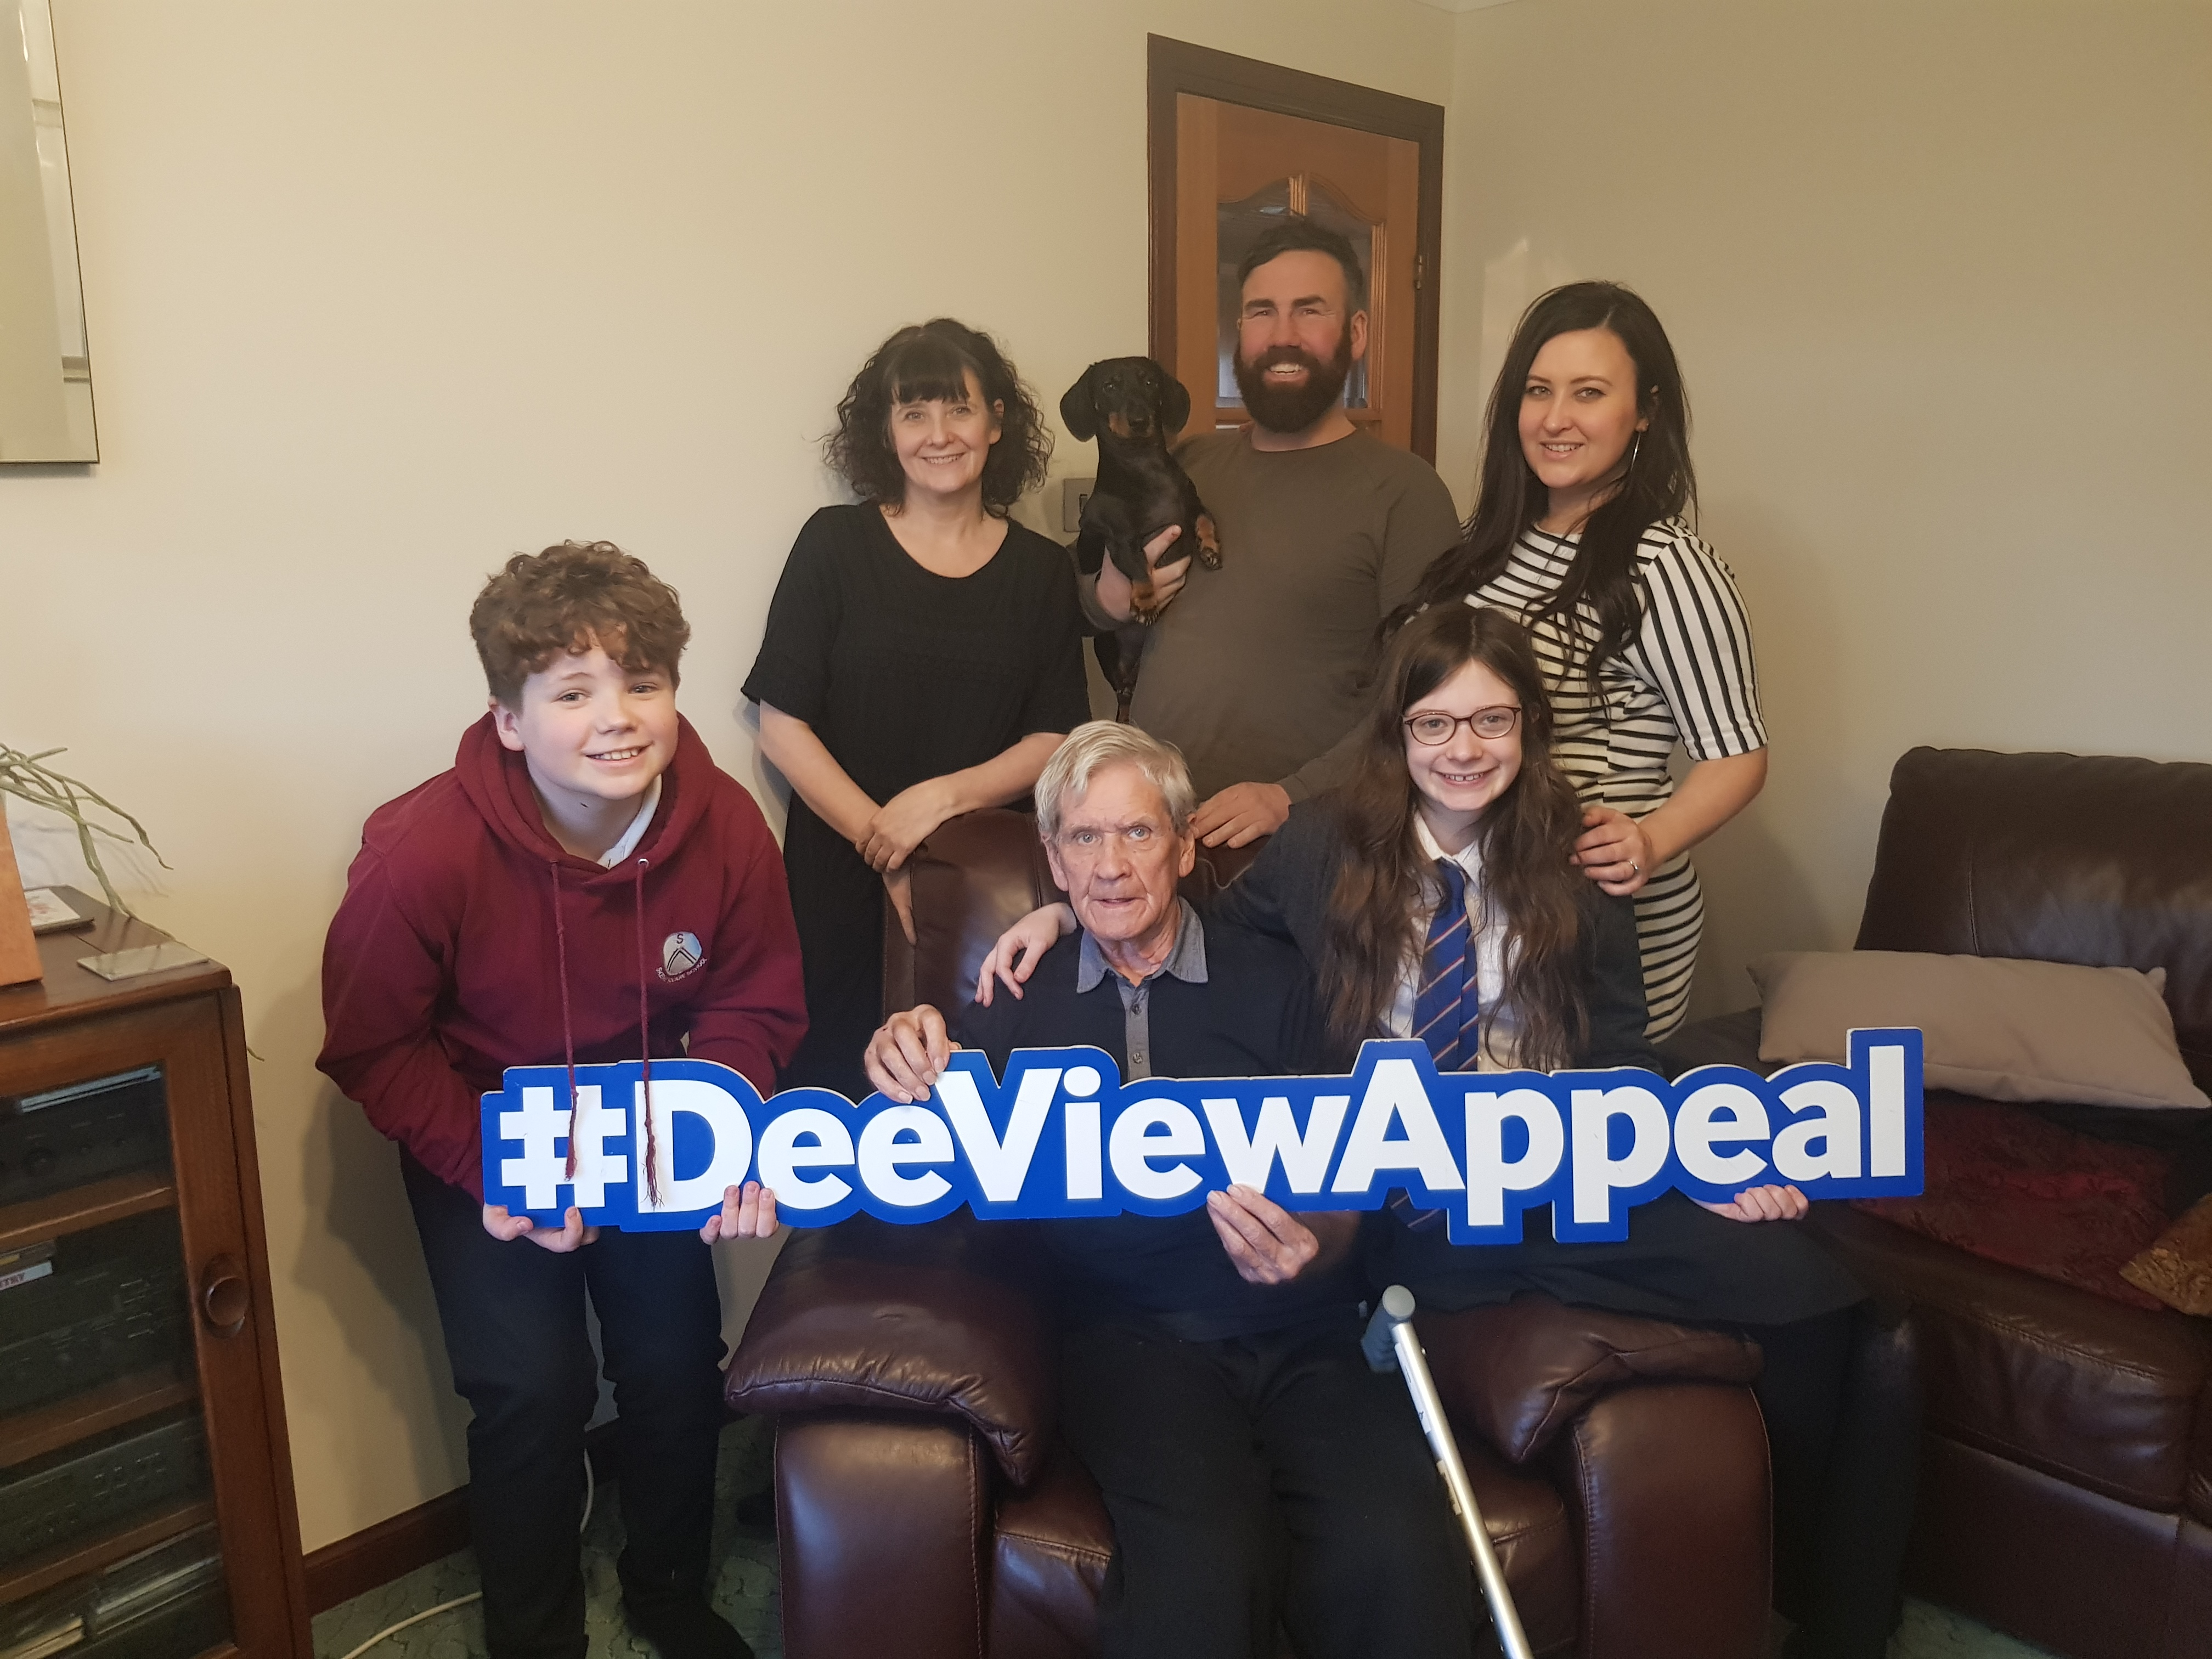 George Russell, 85, is taking part in a Fire Walk for Dee View Court.